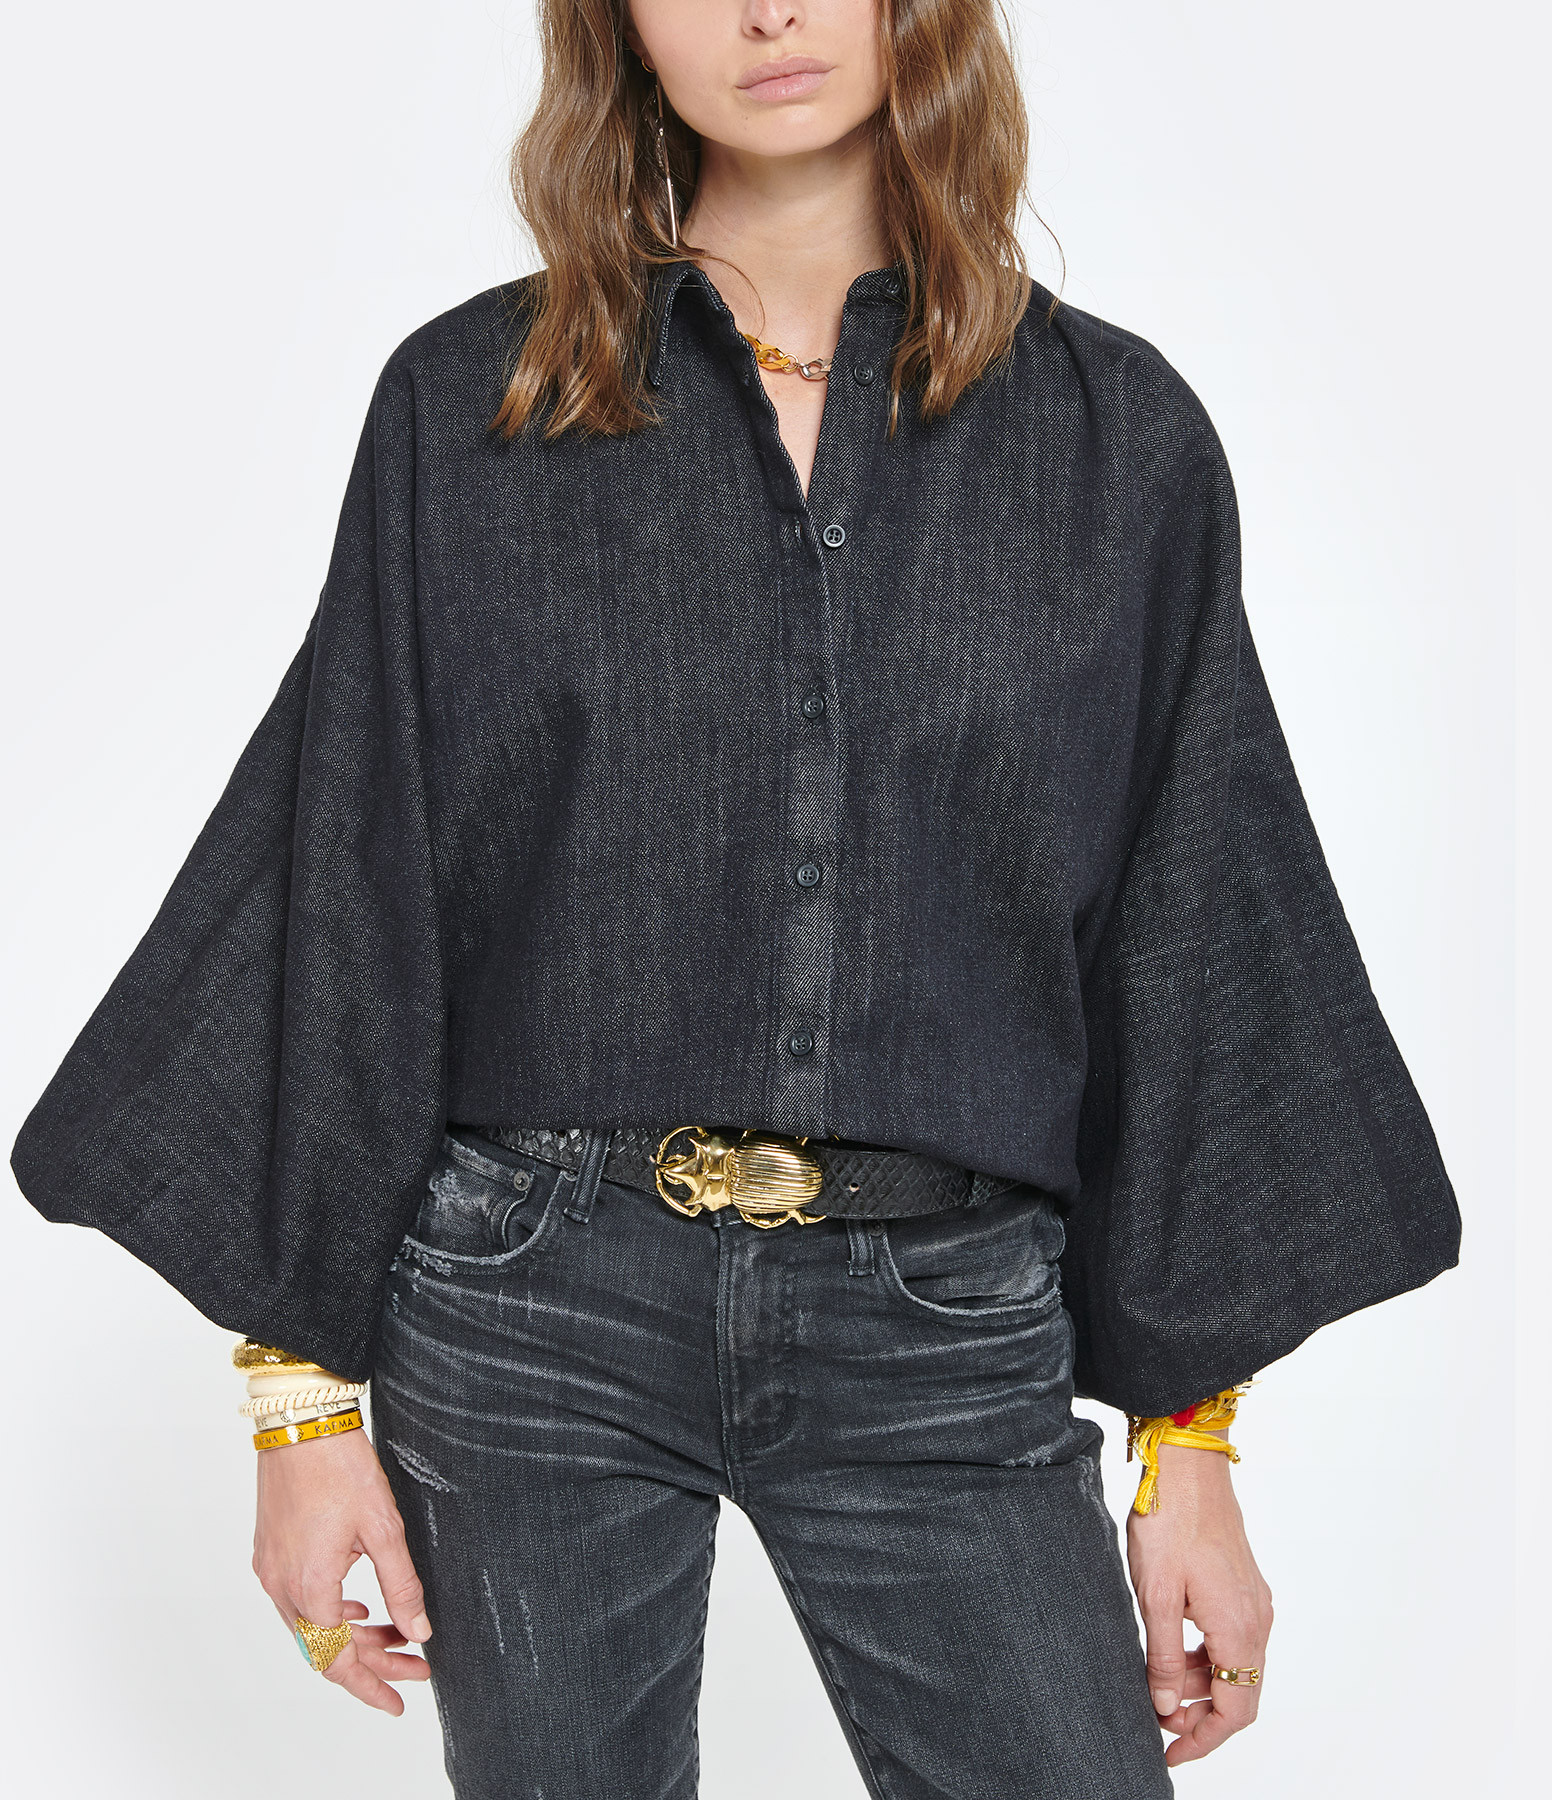 MADE IN TOMBOY - Chemise Claire Noir